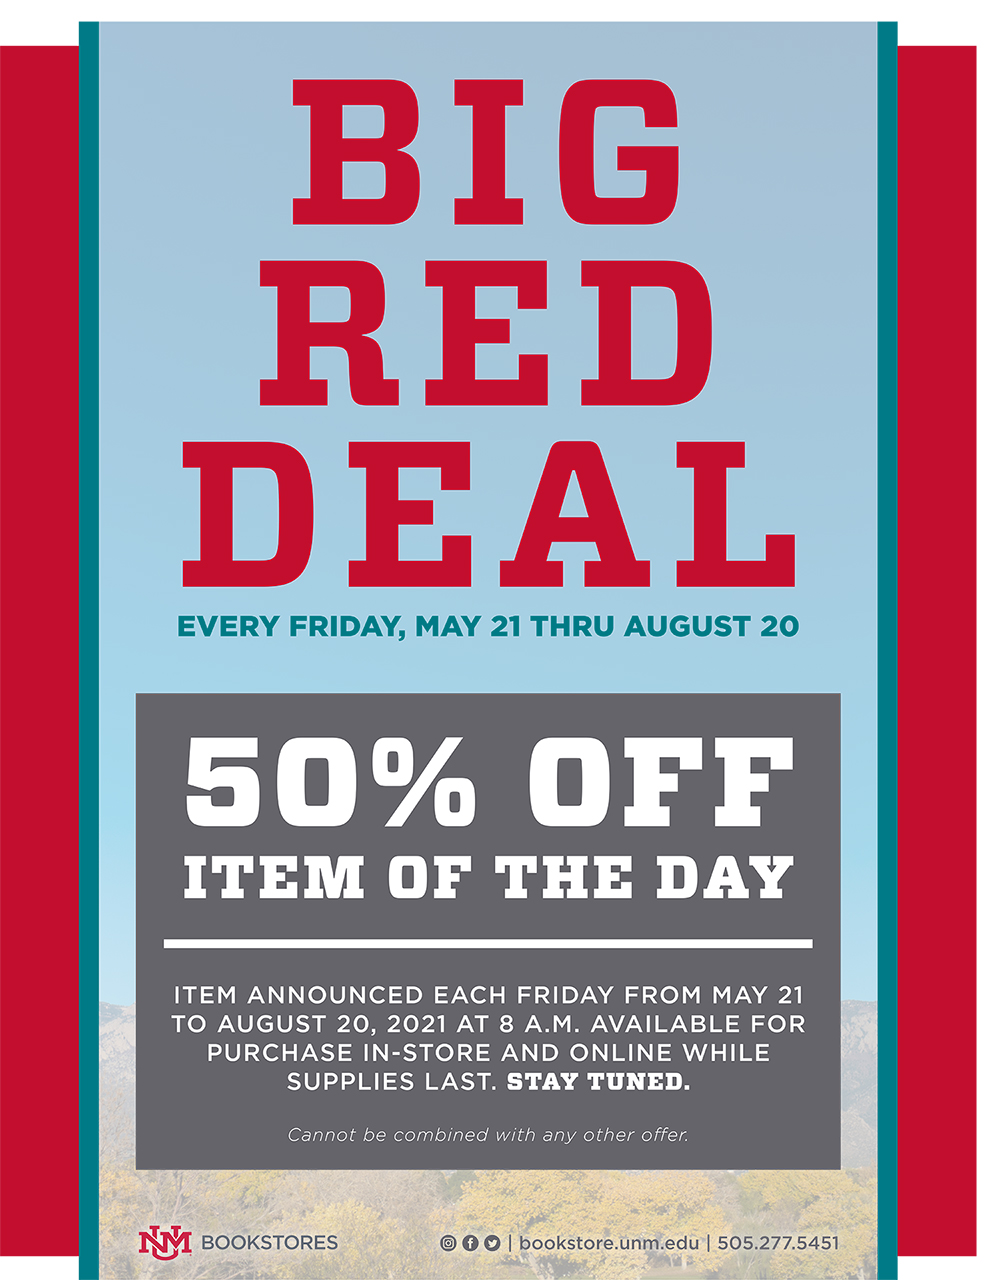 big red deal poster